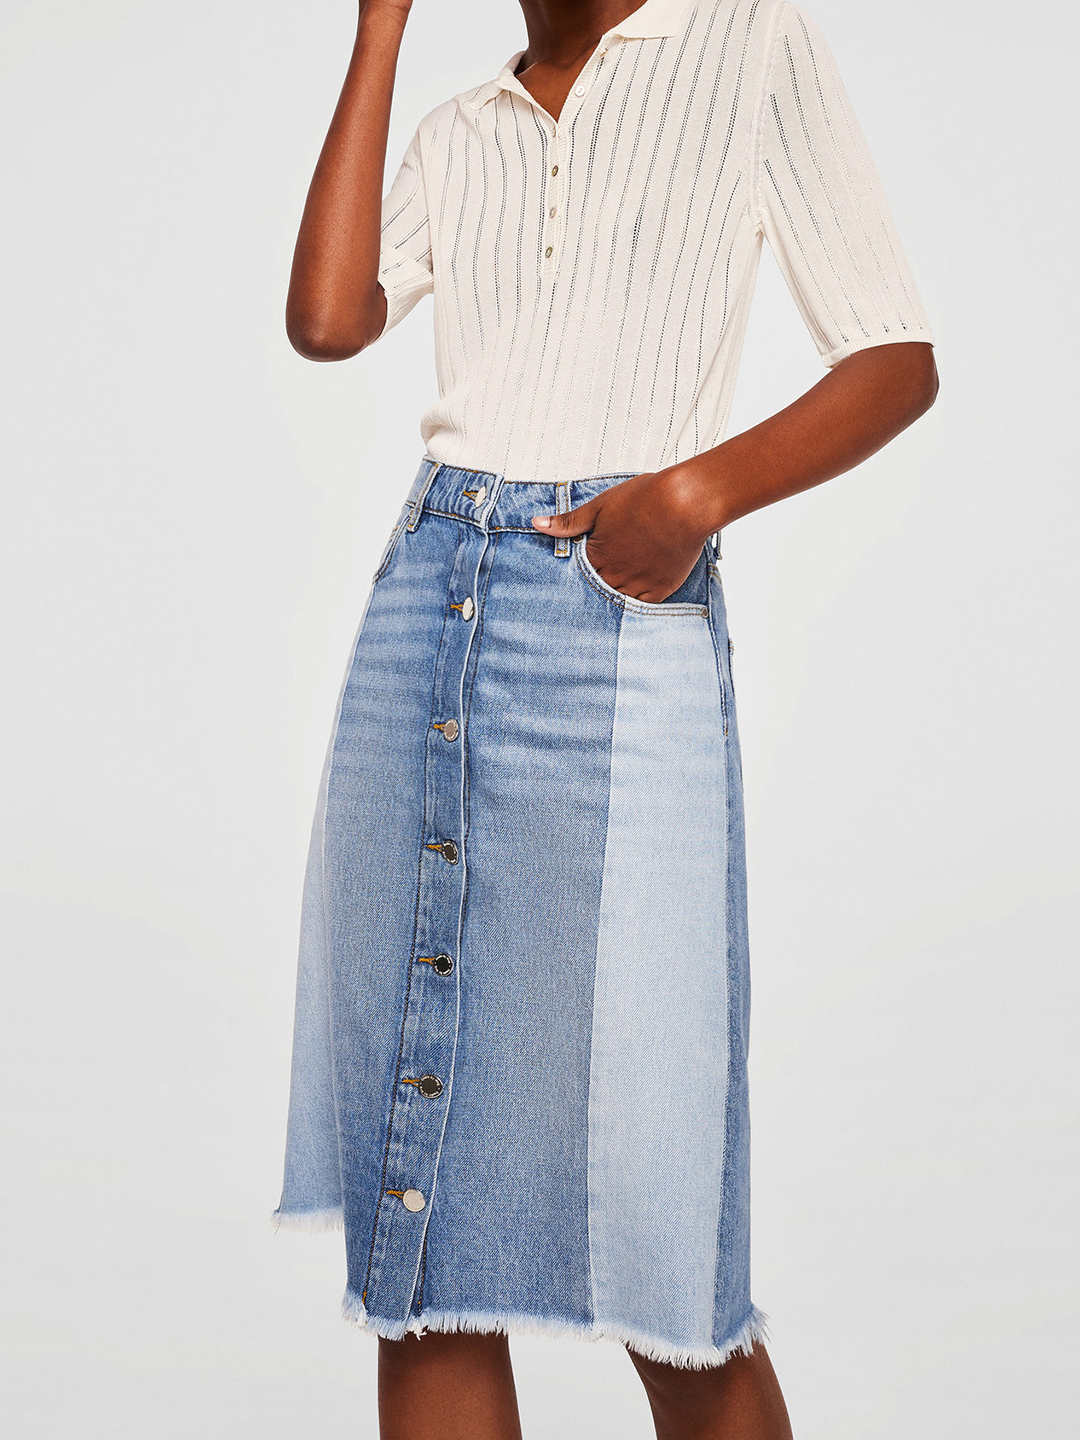 MANGO Blue Panelled Denim A-Line Skirt Price in India